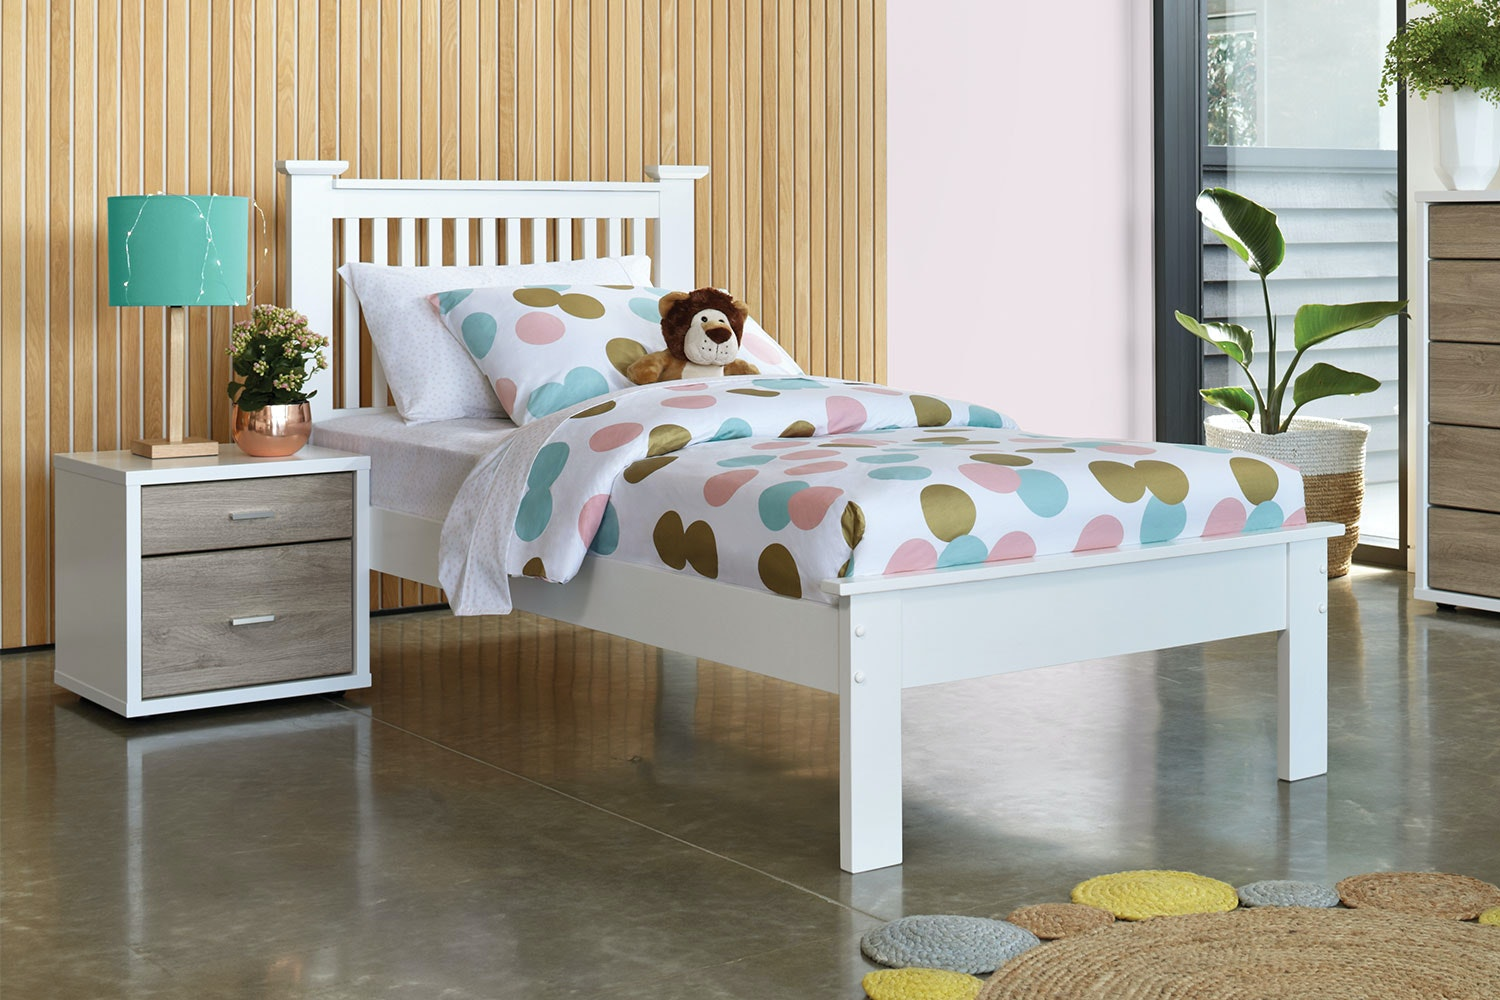 Kids Bedroom Harvey Norman kinds bedroom - kids bed frames, bed frames | harvey norman new